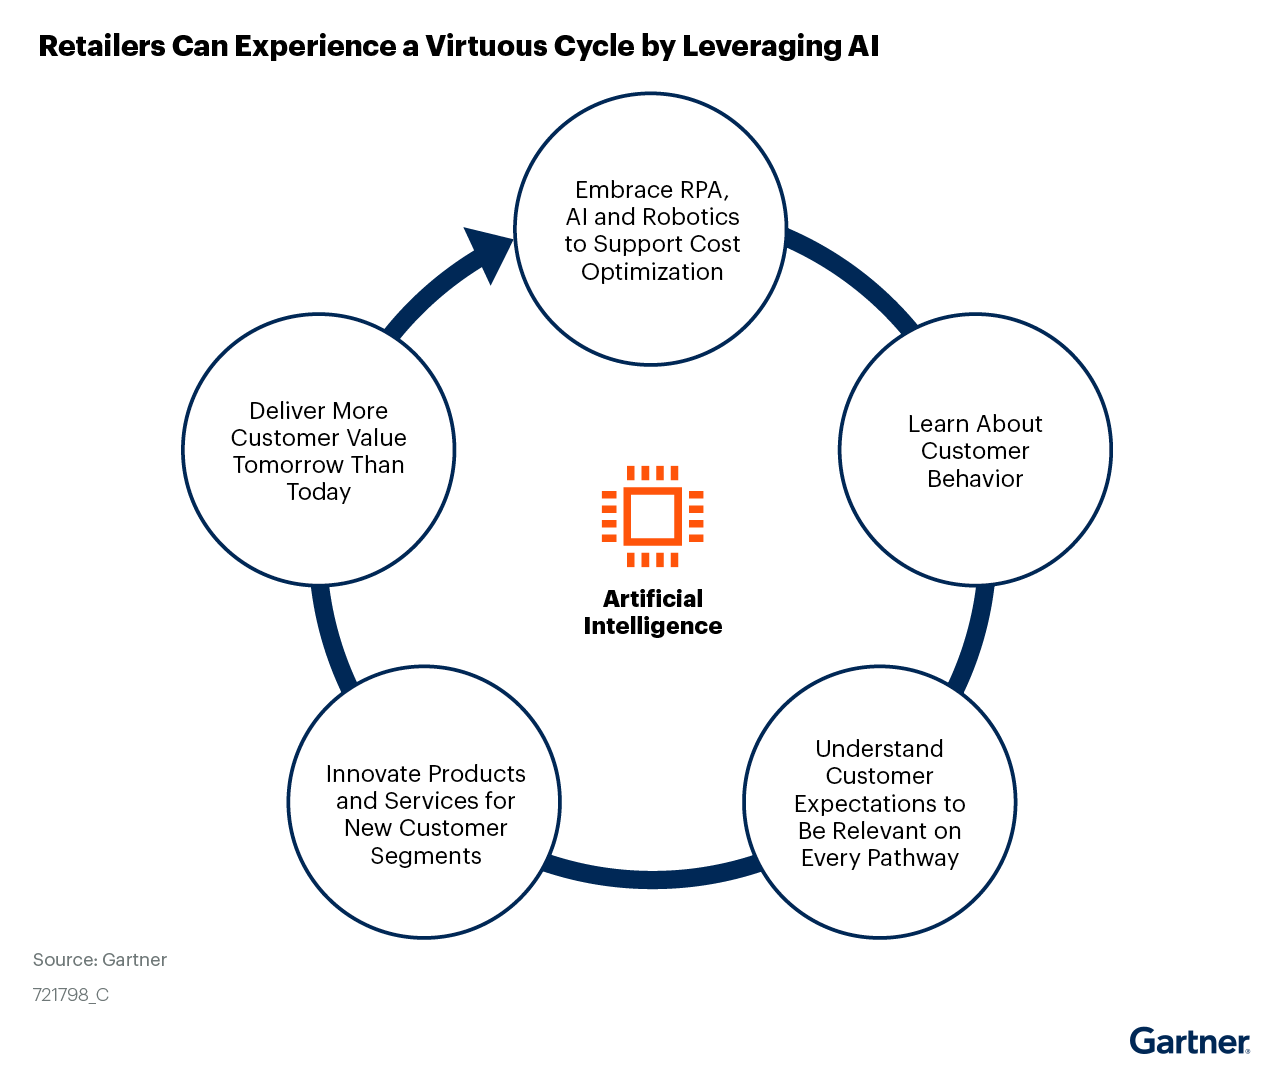 Figure 1: Retailers Can Experience a Virtuous Cycle by Leveraging AI